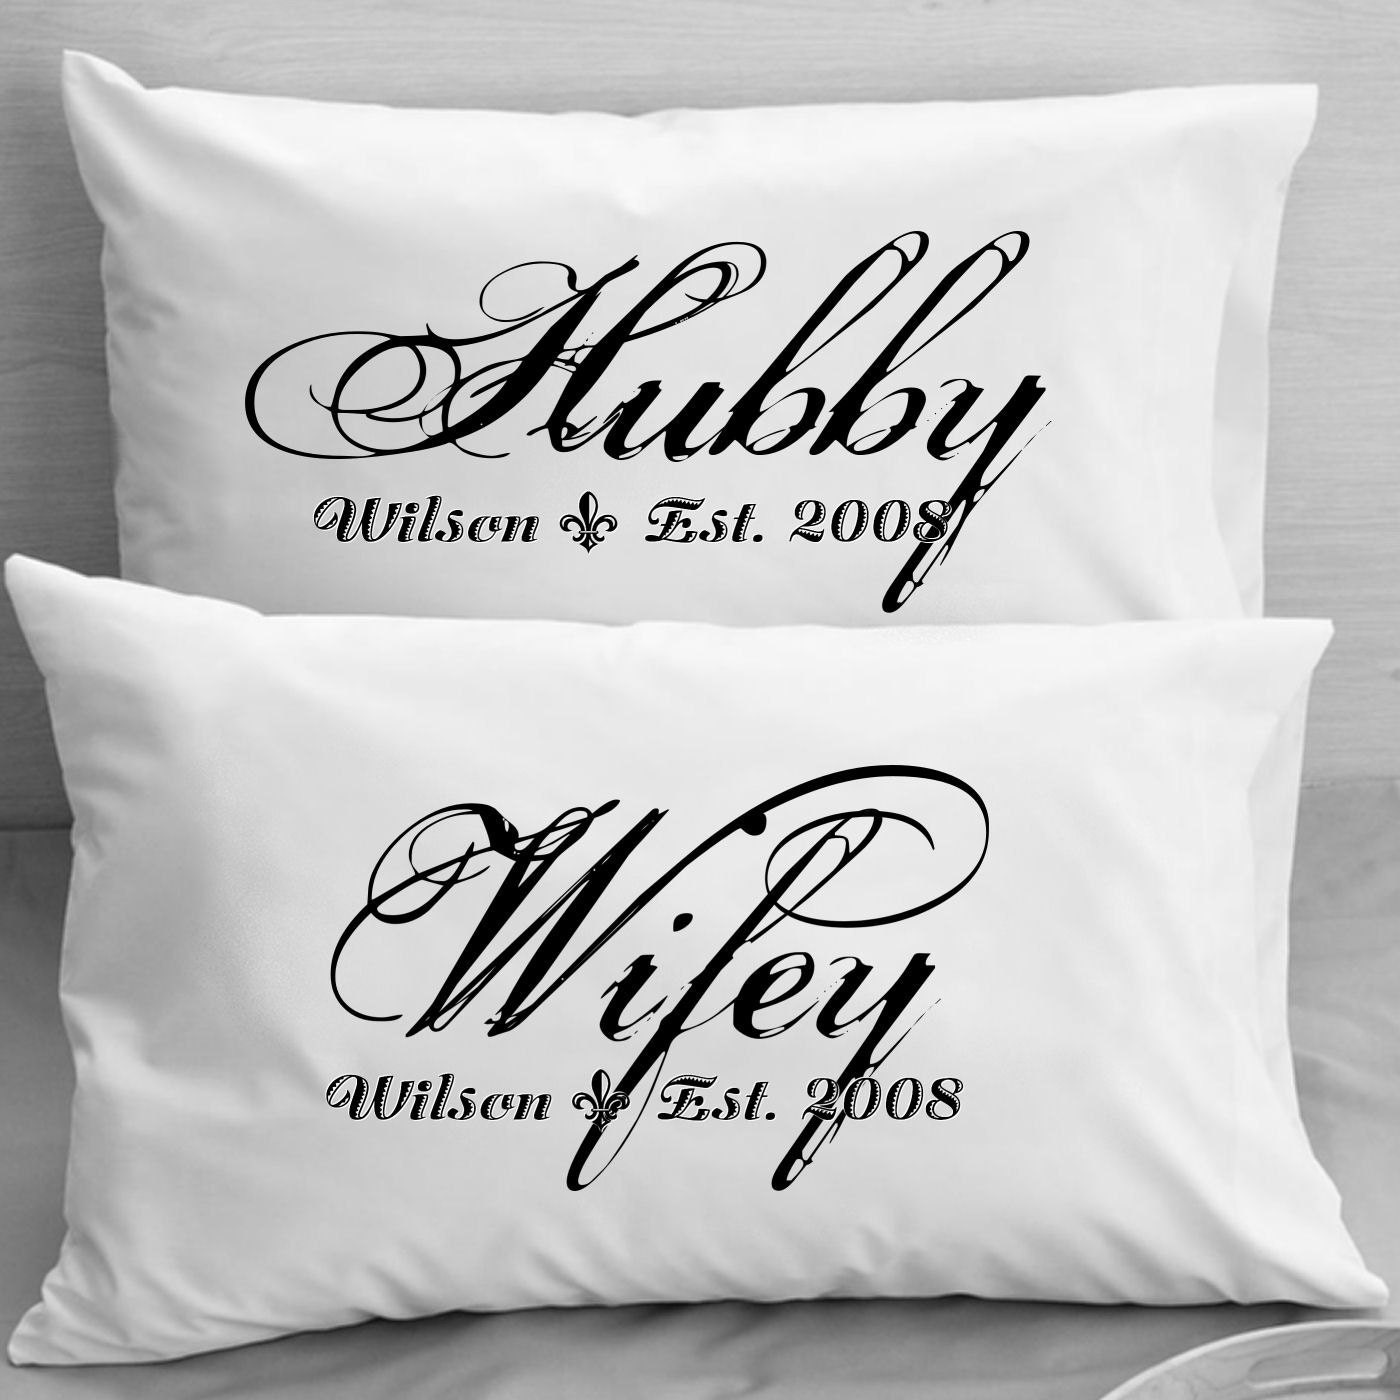 Wedding Anniversary Gifts For Husband Ideas: Couples Pillow Cases Custom Personalized Wifey Hubby Wife